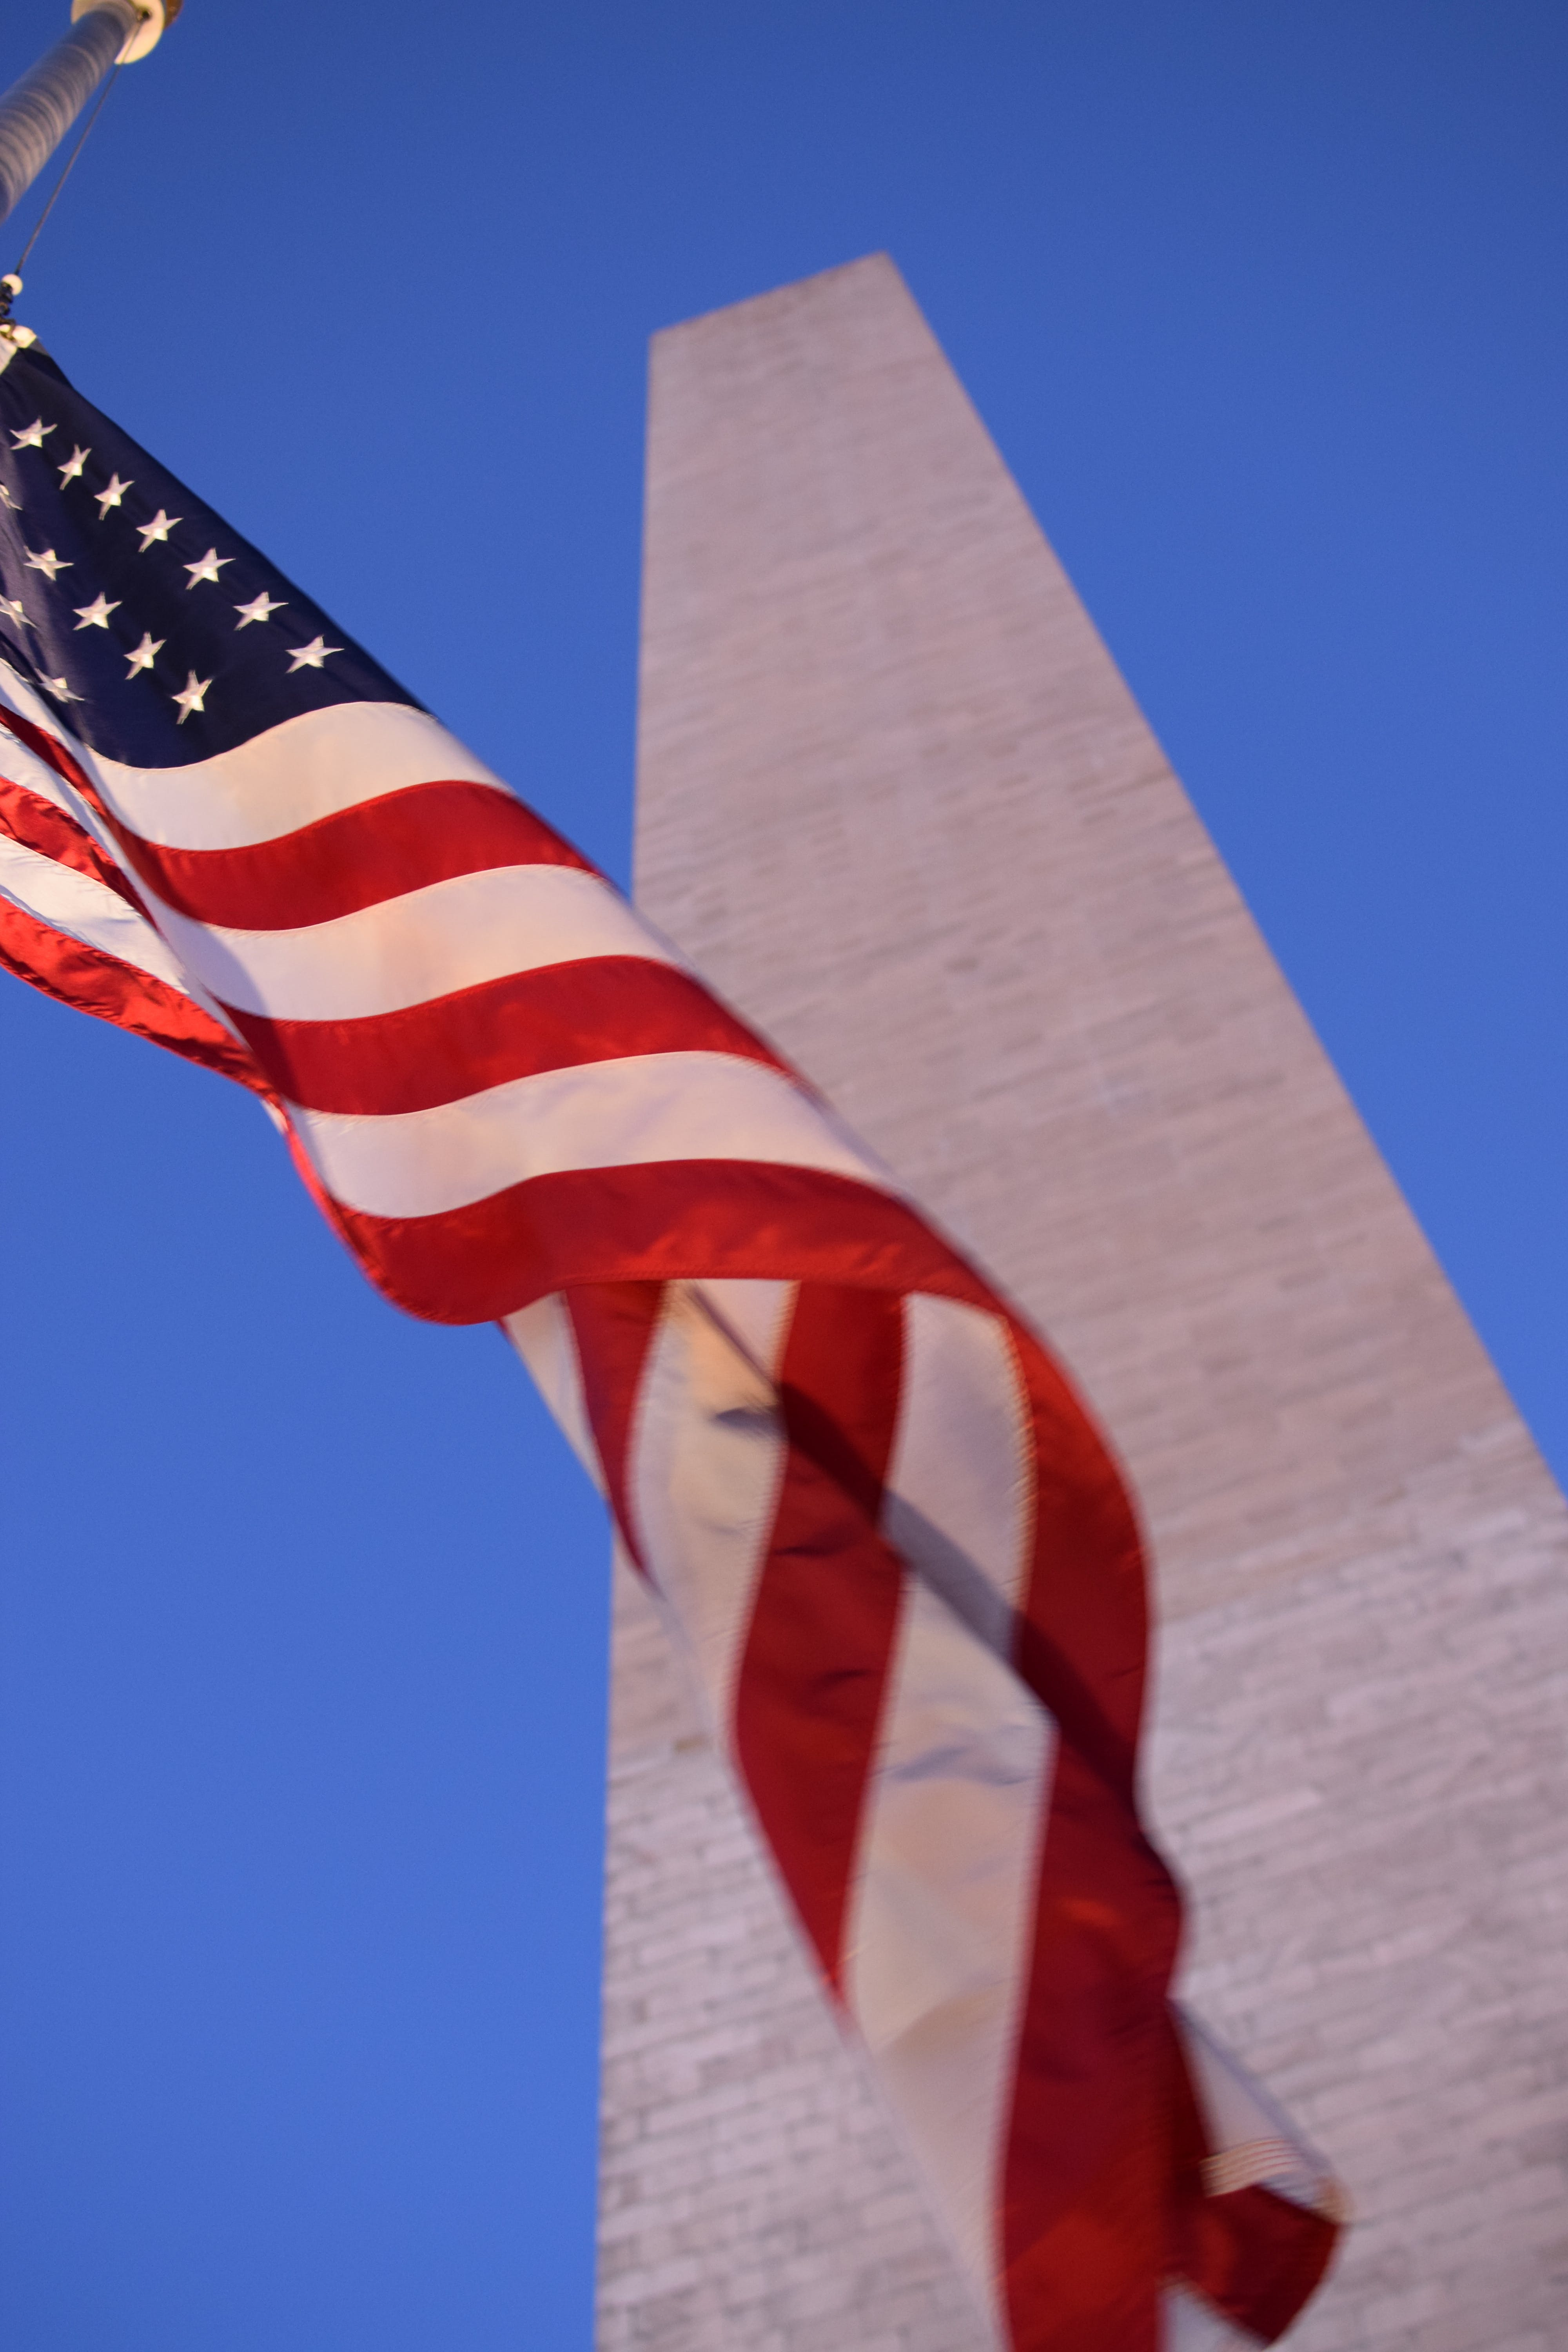 Free stock photo of American flag, blue sky, flag, flag in wind